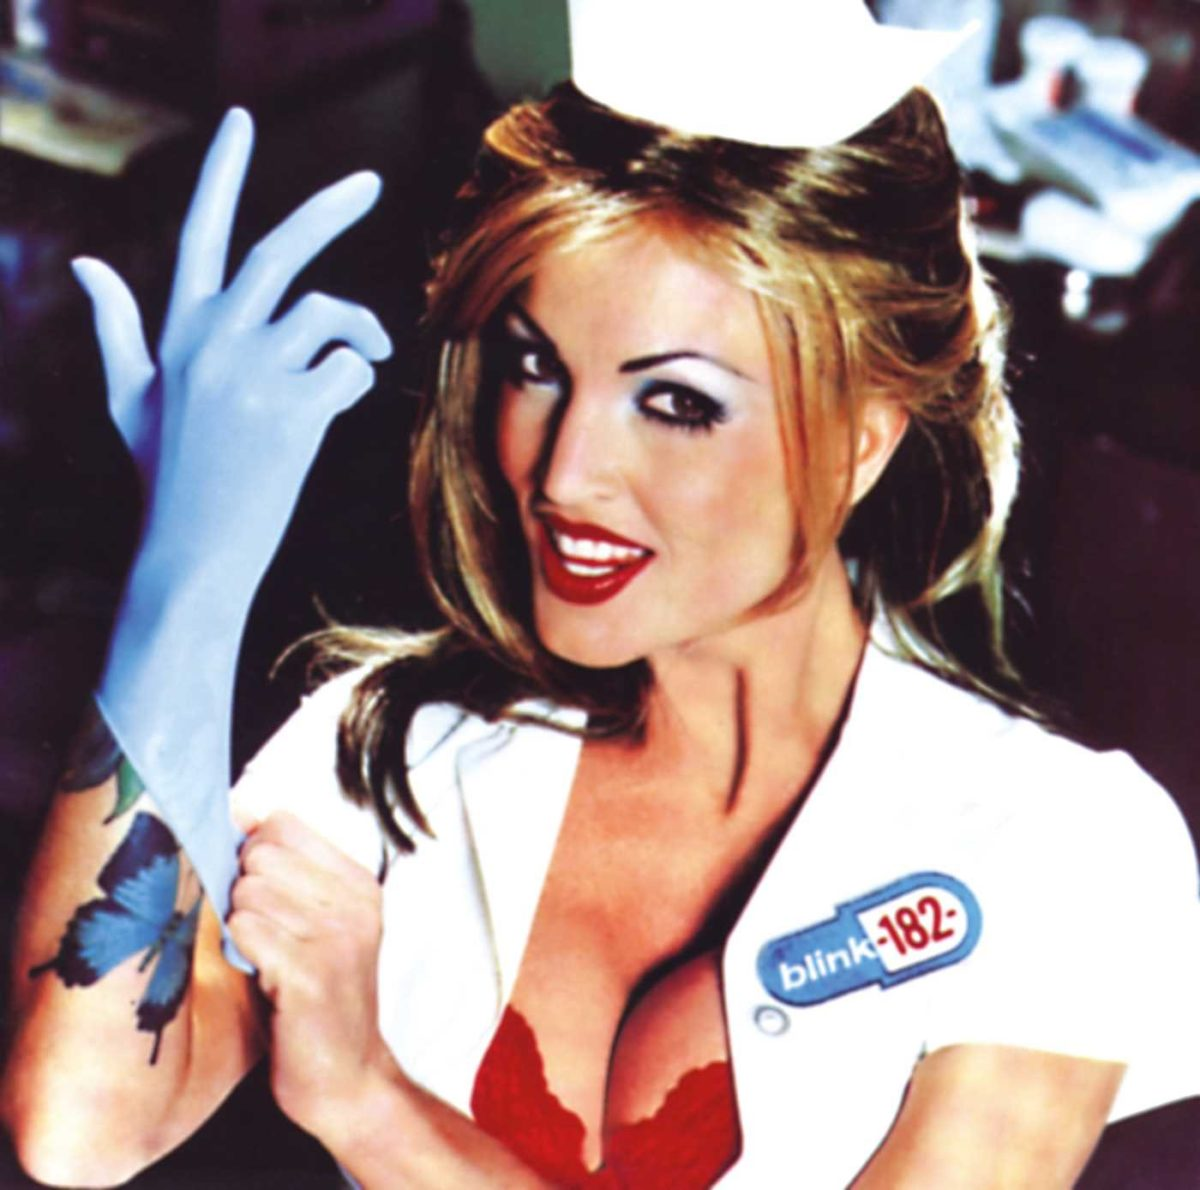 Blink 182 – Enema Of The States